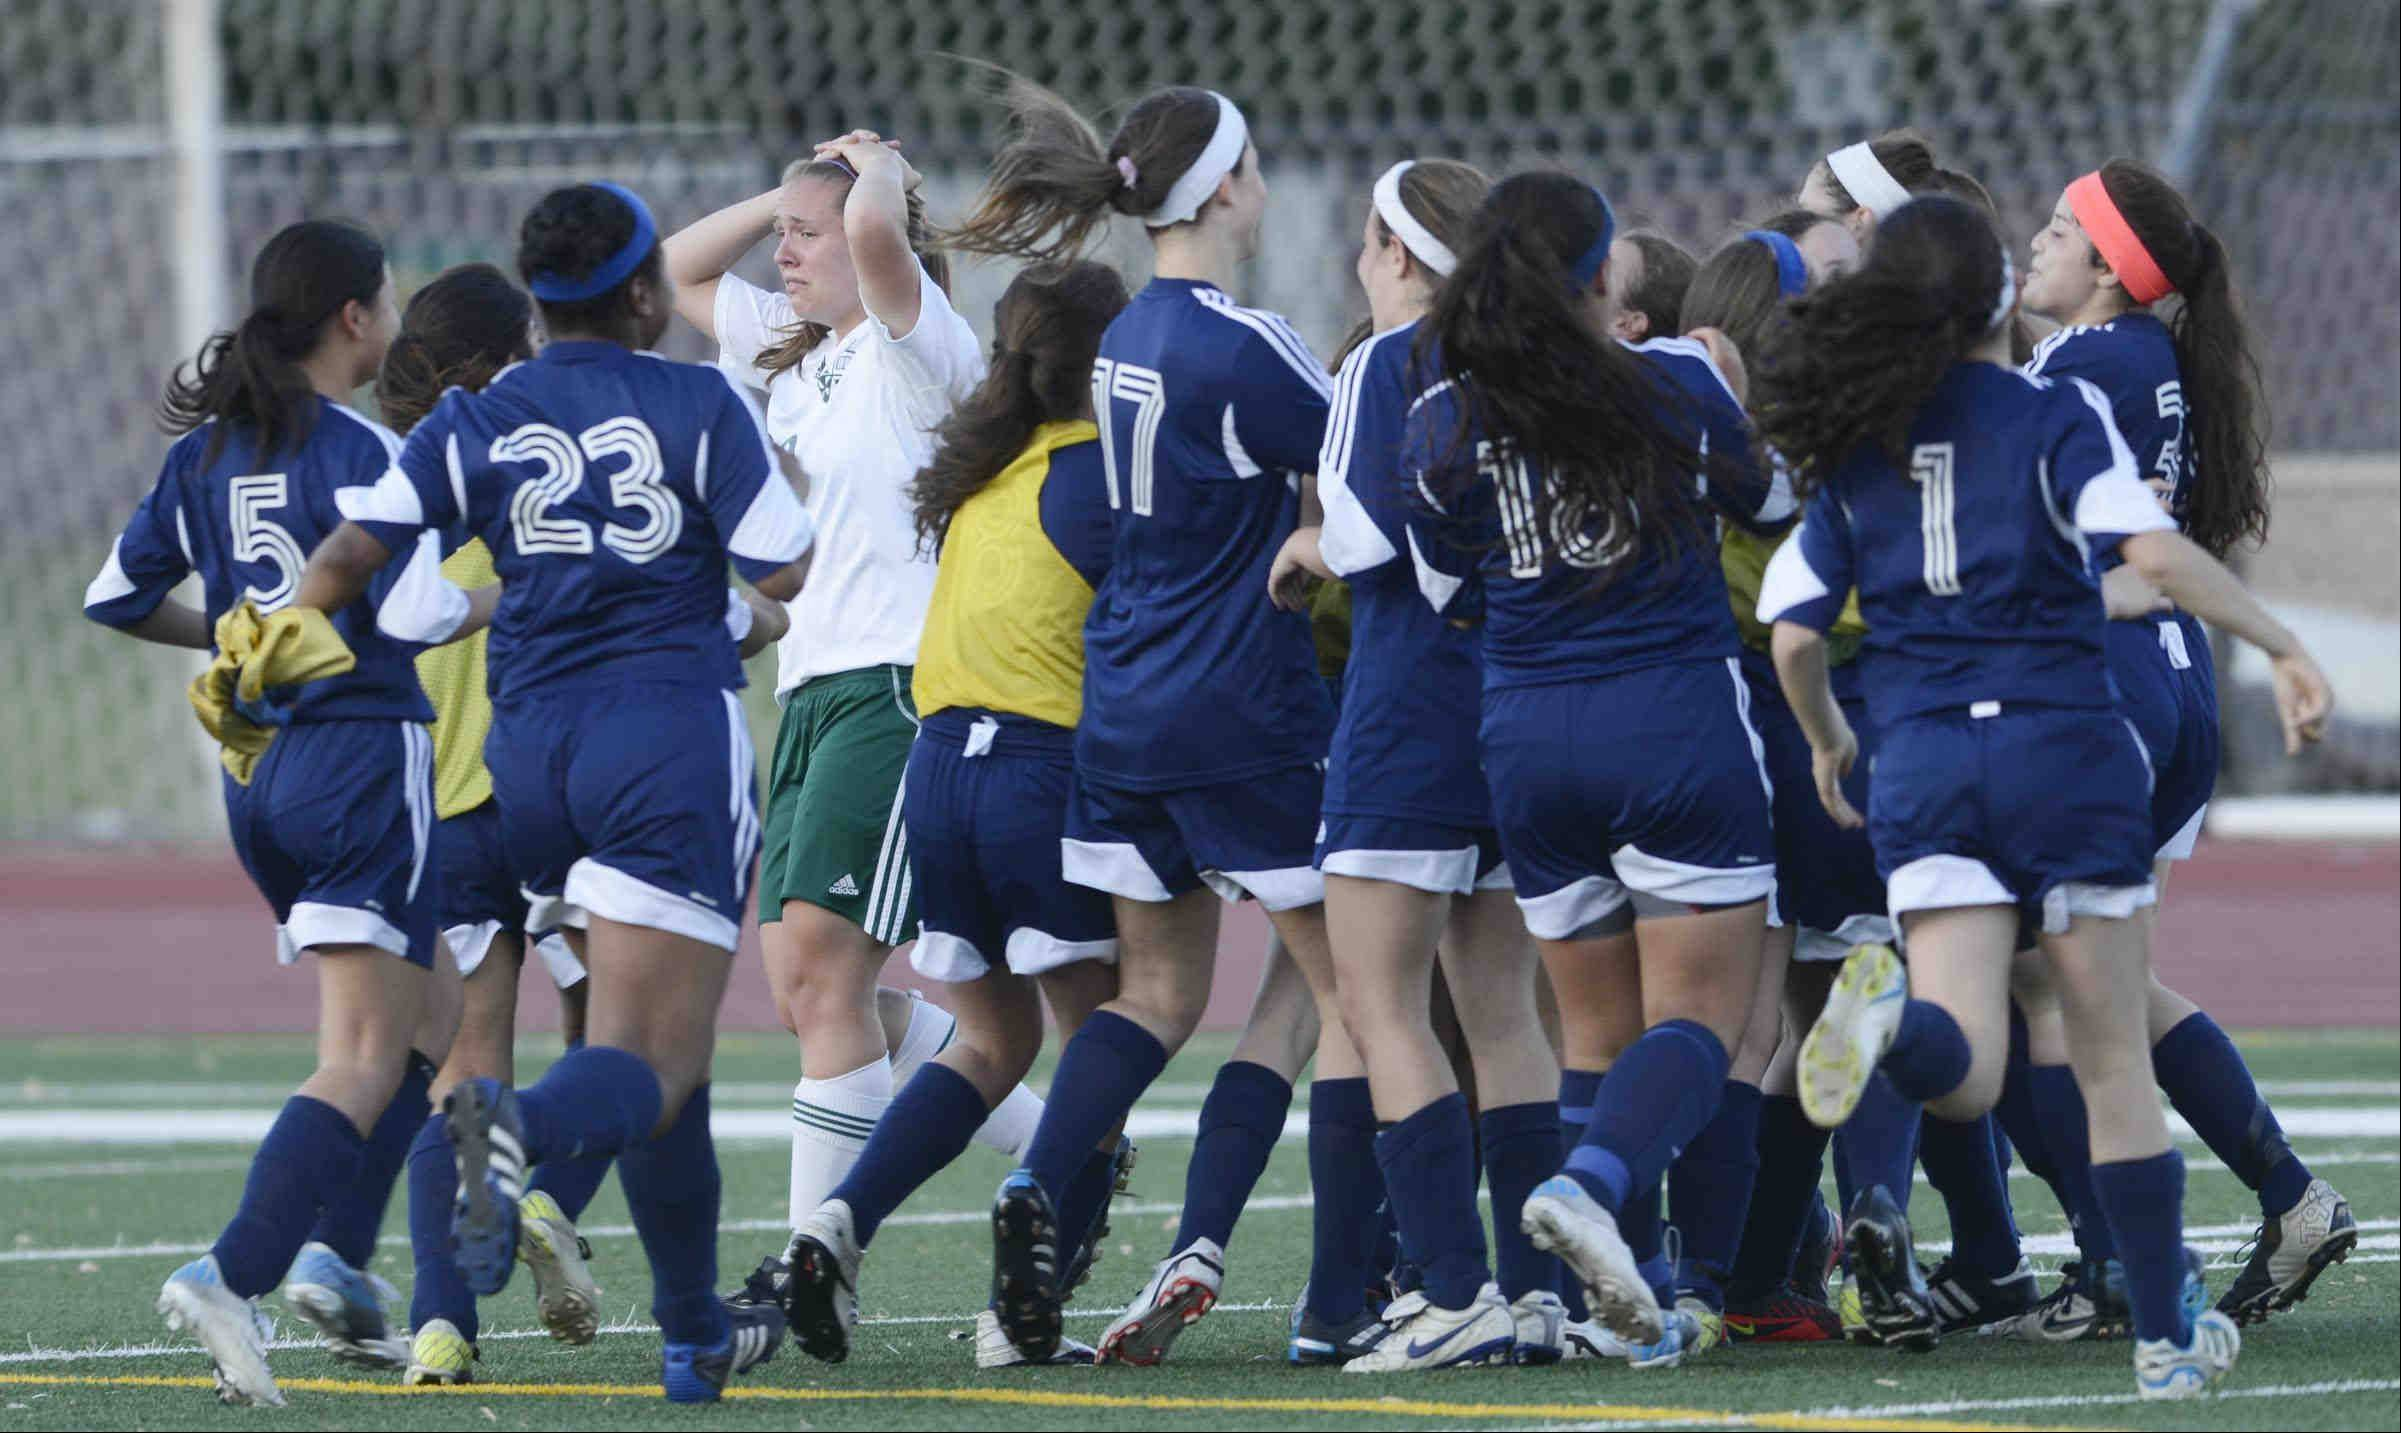 St. Edward's Meagan Kearney walks away with her hands on her head as Francis W. Parker players celebrate their 3-1 win Tuesday in the supersectional playoff at Concordia University in River Forest. Kearney scored the only Green Wave goal.